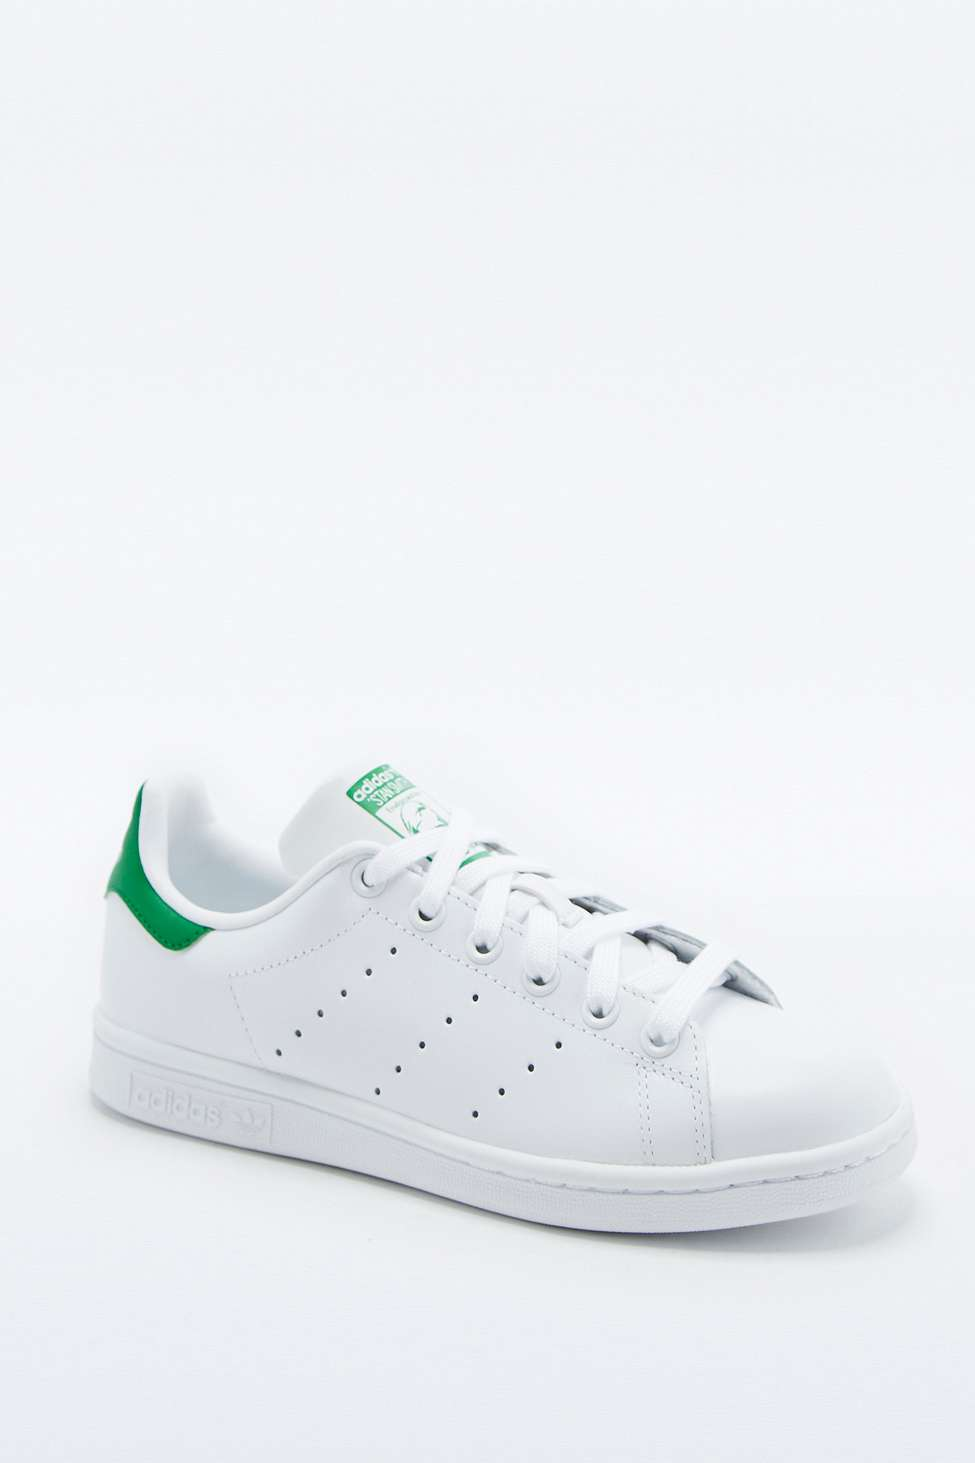 Adidas Originals Stan Smith White and Green Trainers